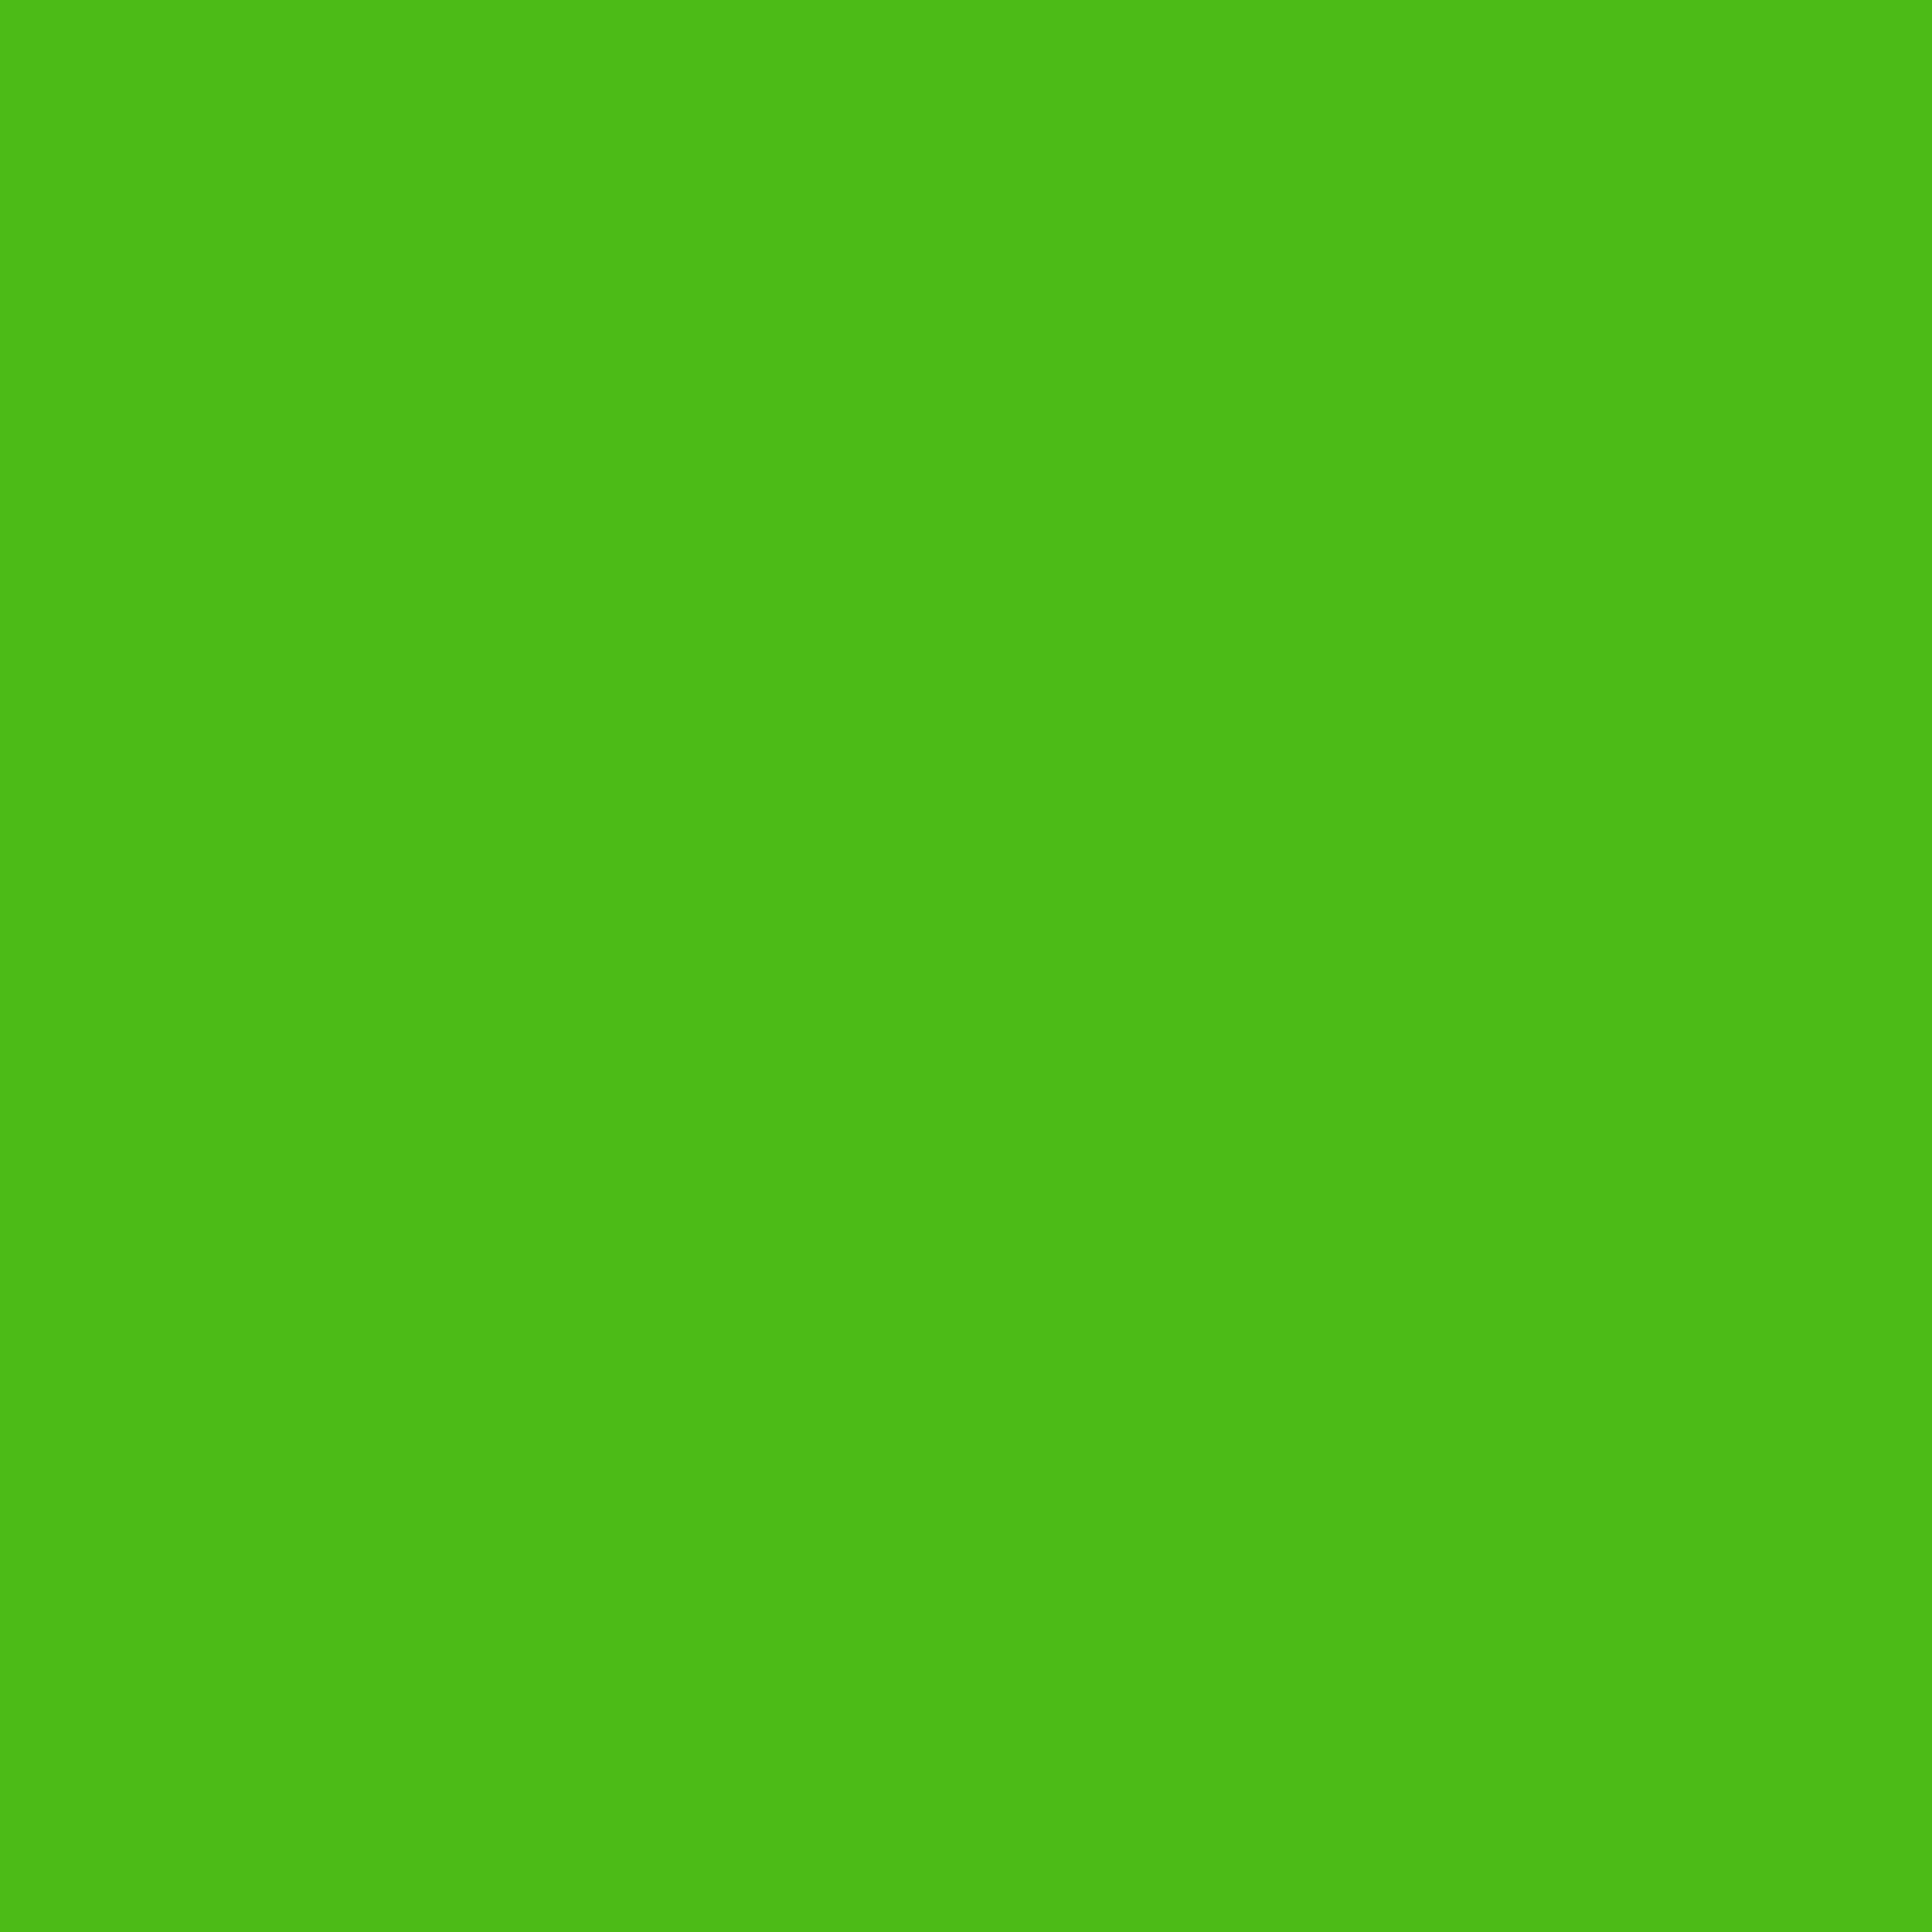 2048x2048 Kelly Green Solid Color Background